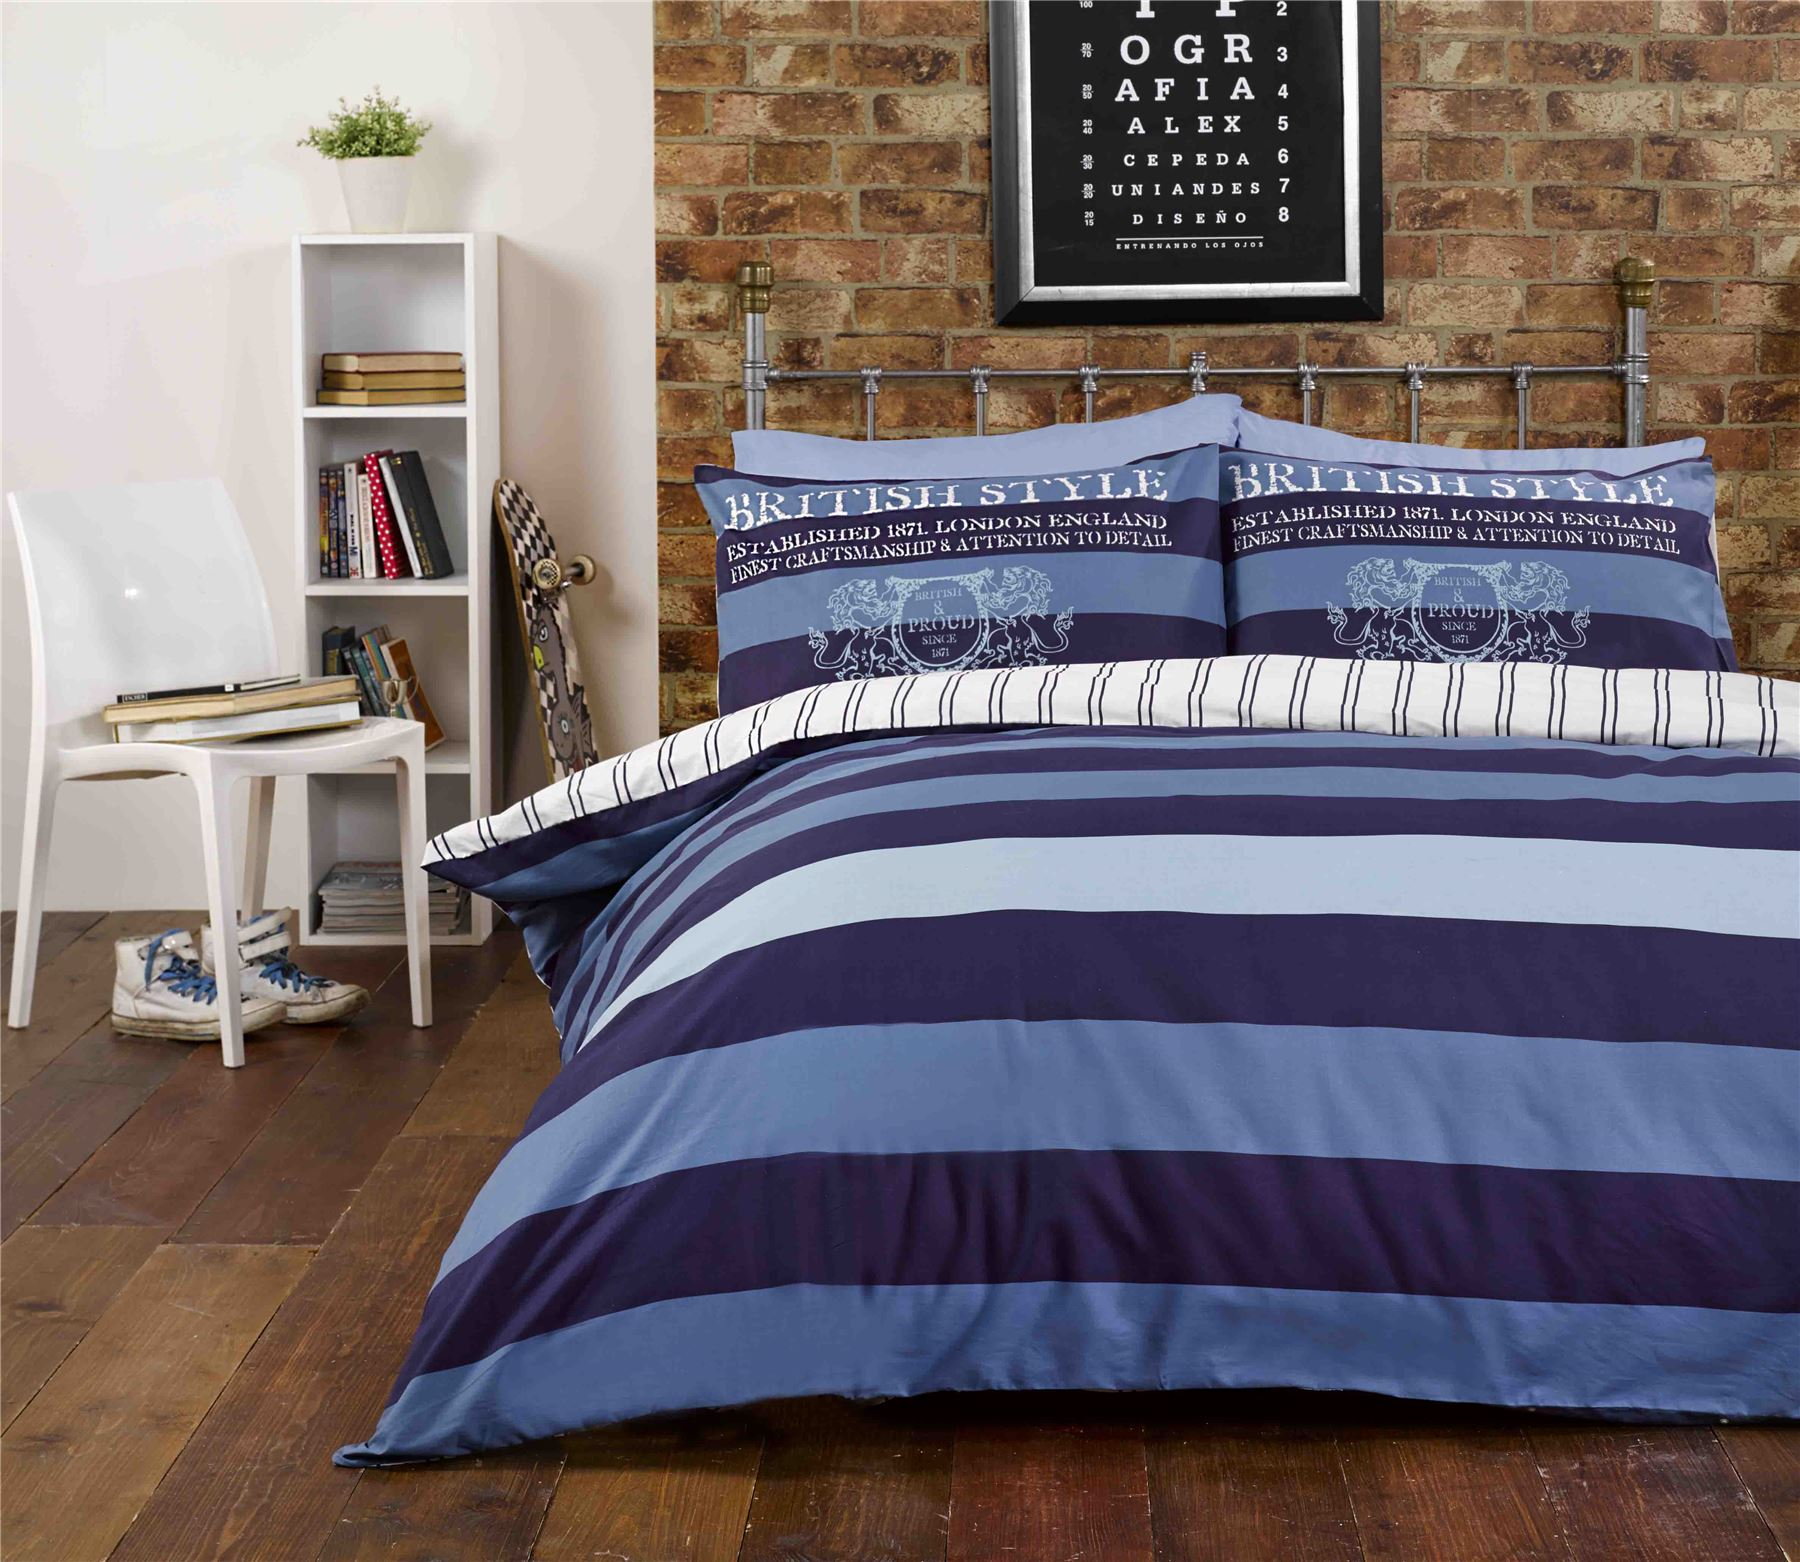 Boys Double Quilt Cover Boys Double Duvet Cover Sweetgalas